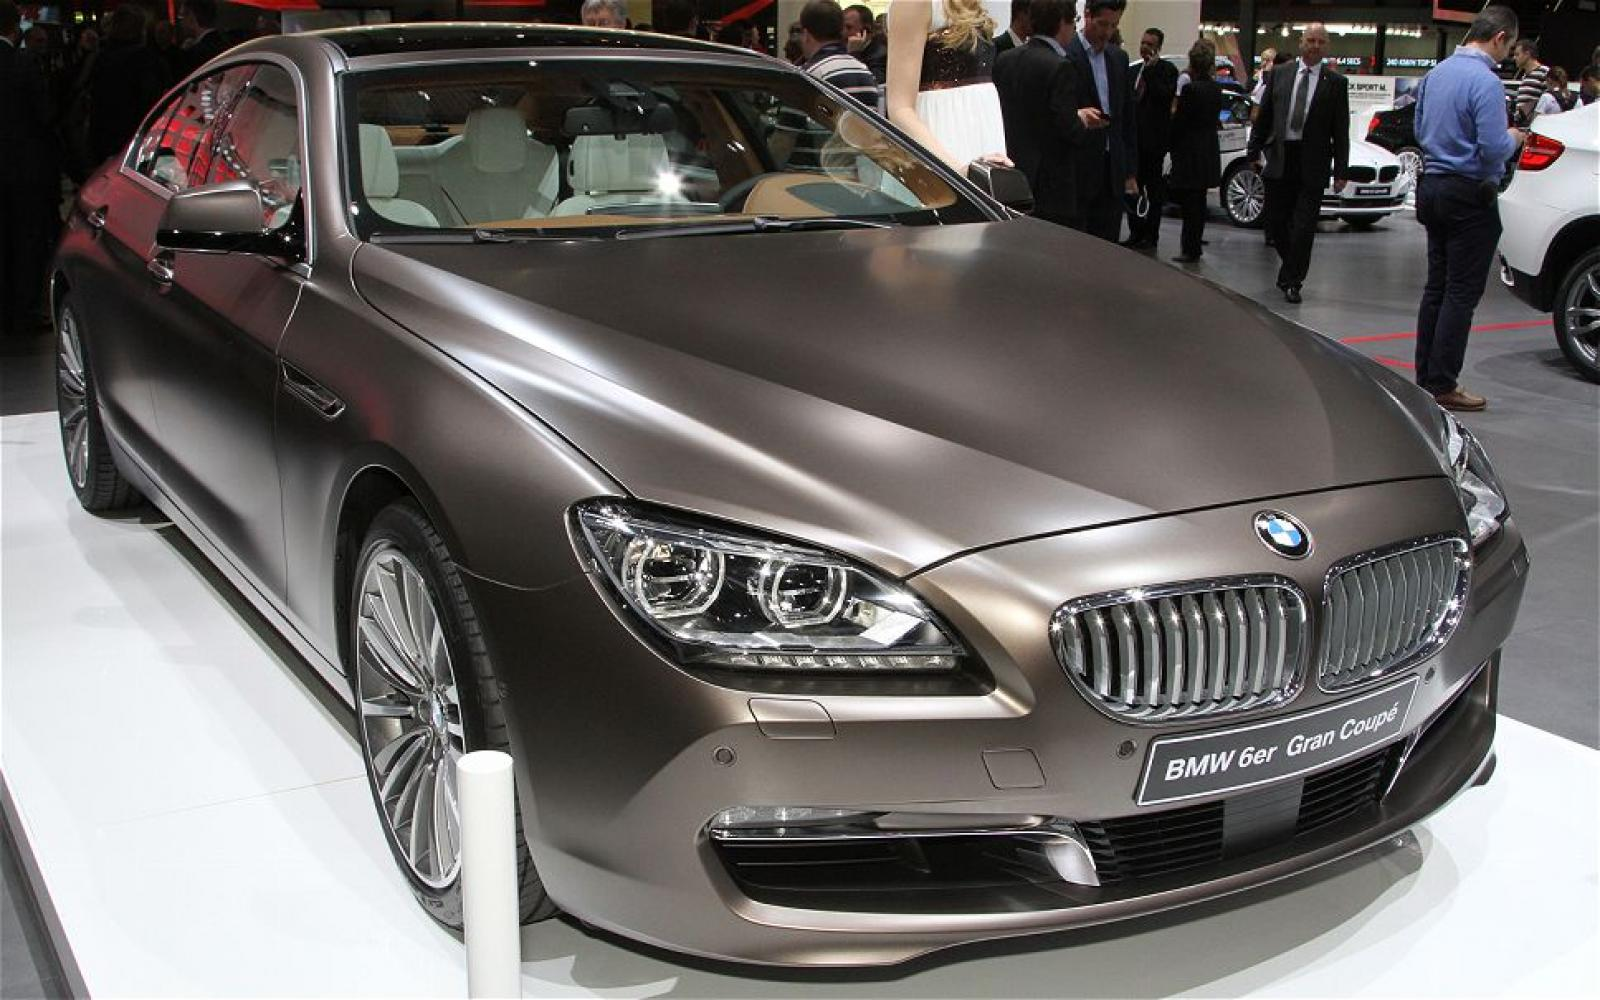 2014 bmw 6 series gran coupe information and photos zombiedrive. Black Bedroom Furniture Sets. Home Design Ideas